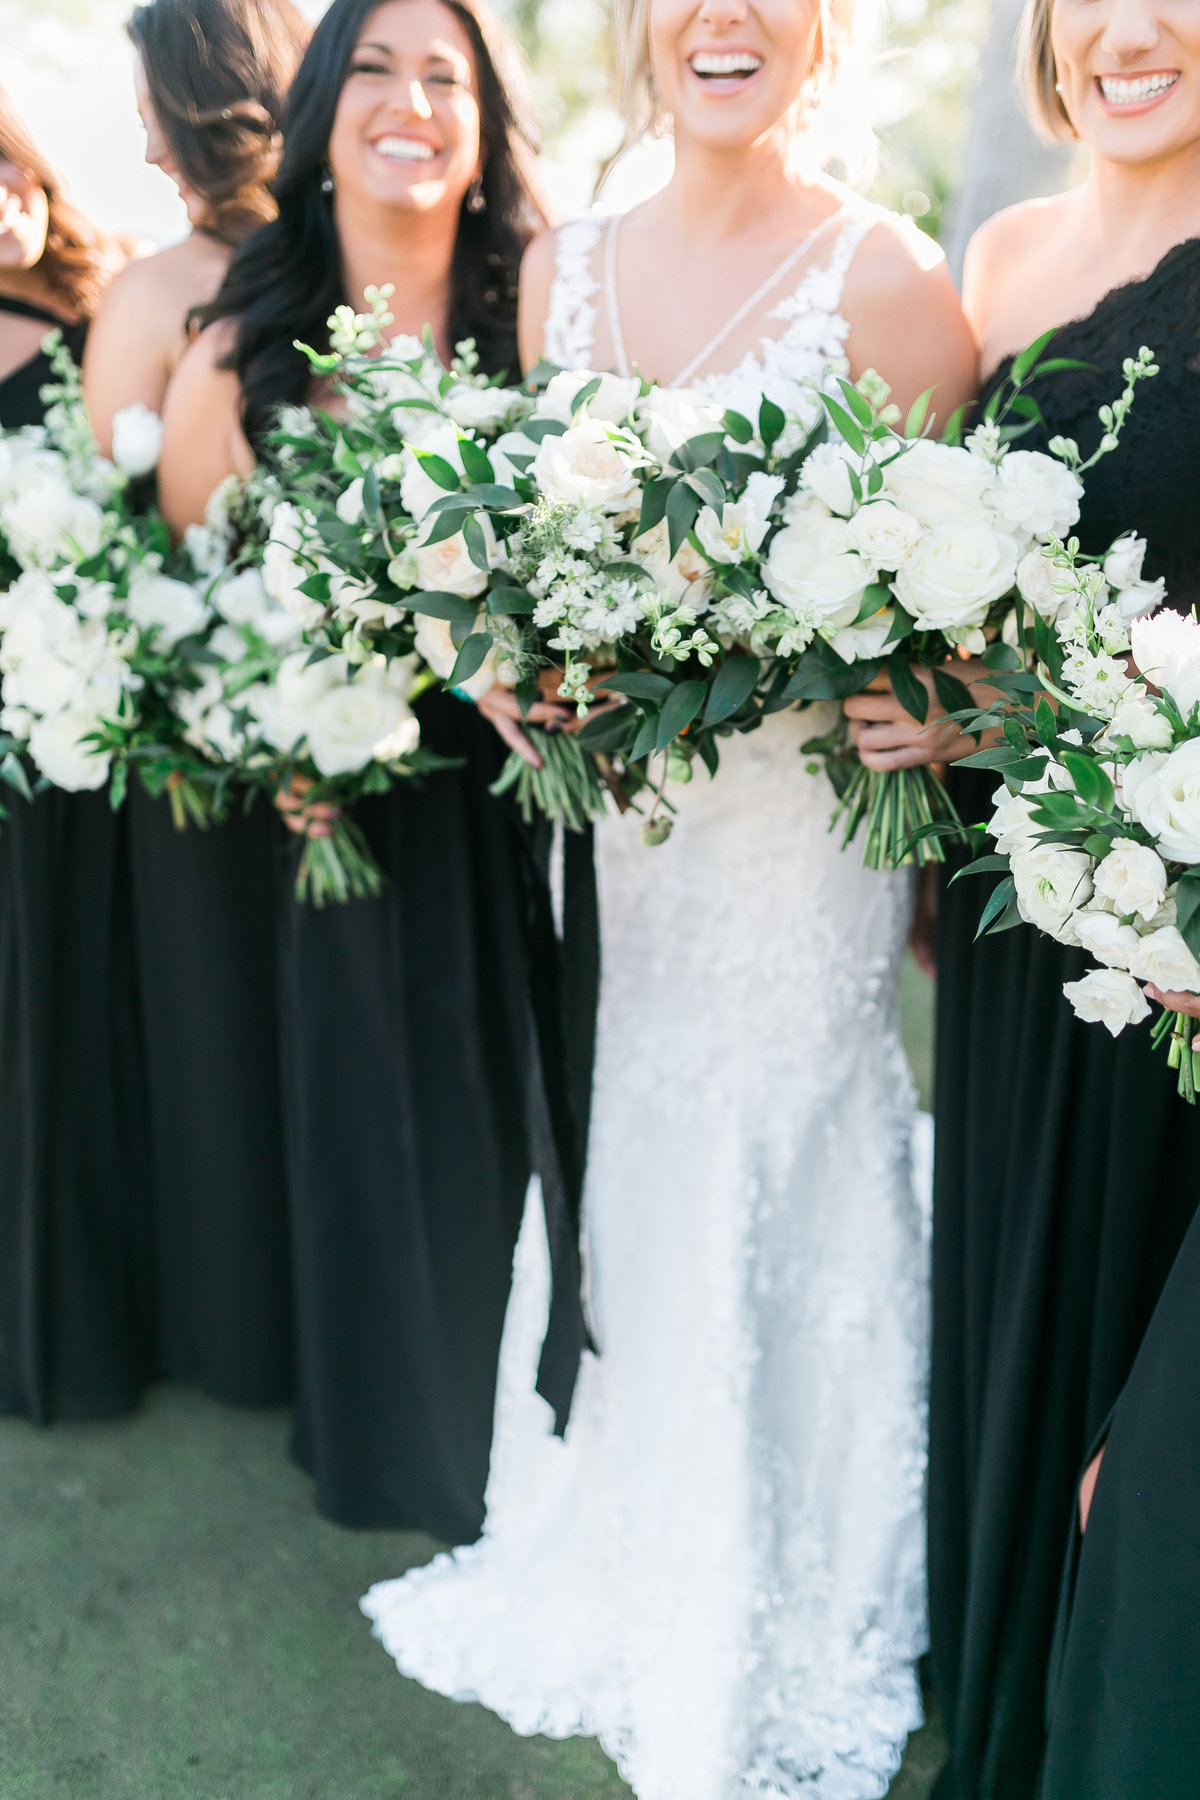 bride and bridesmaids photo in black bridesmaids dresses with white and greenery bouquet with black ribbon